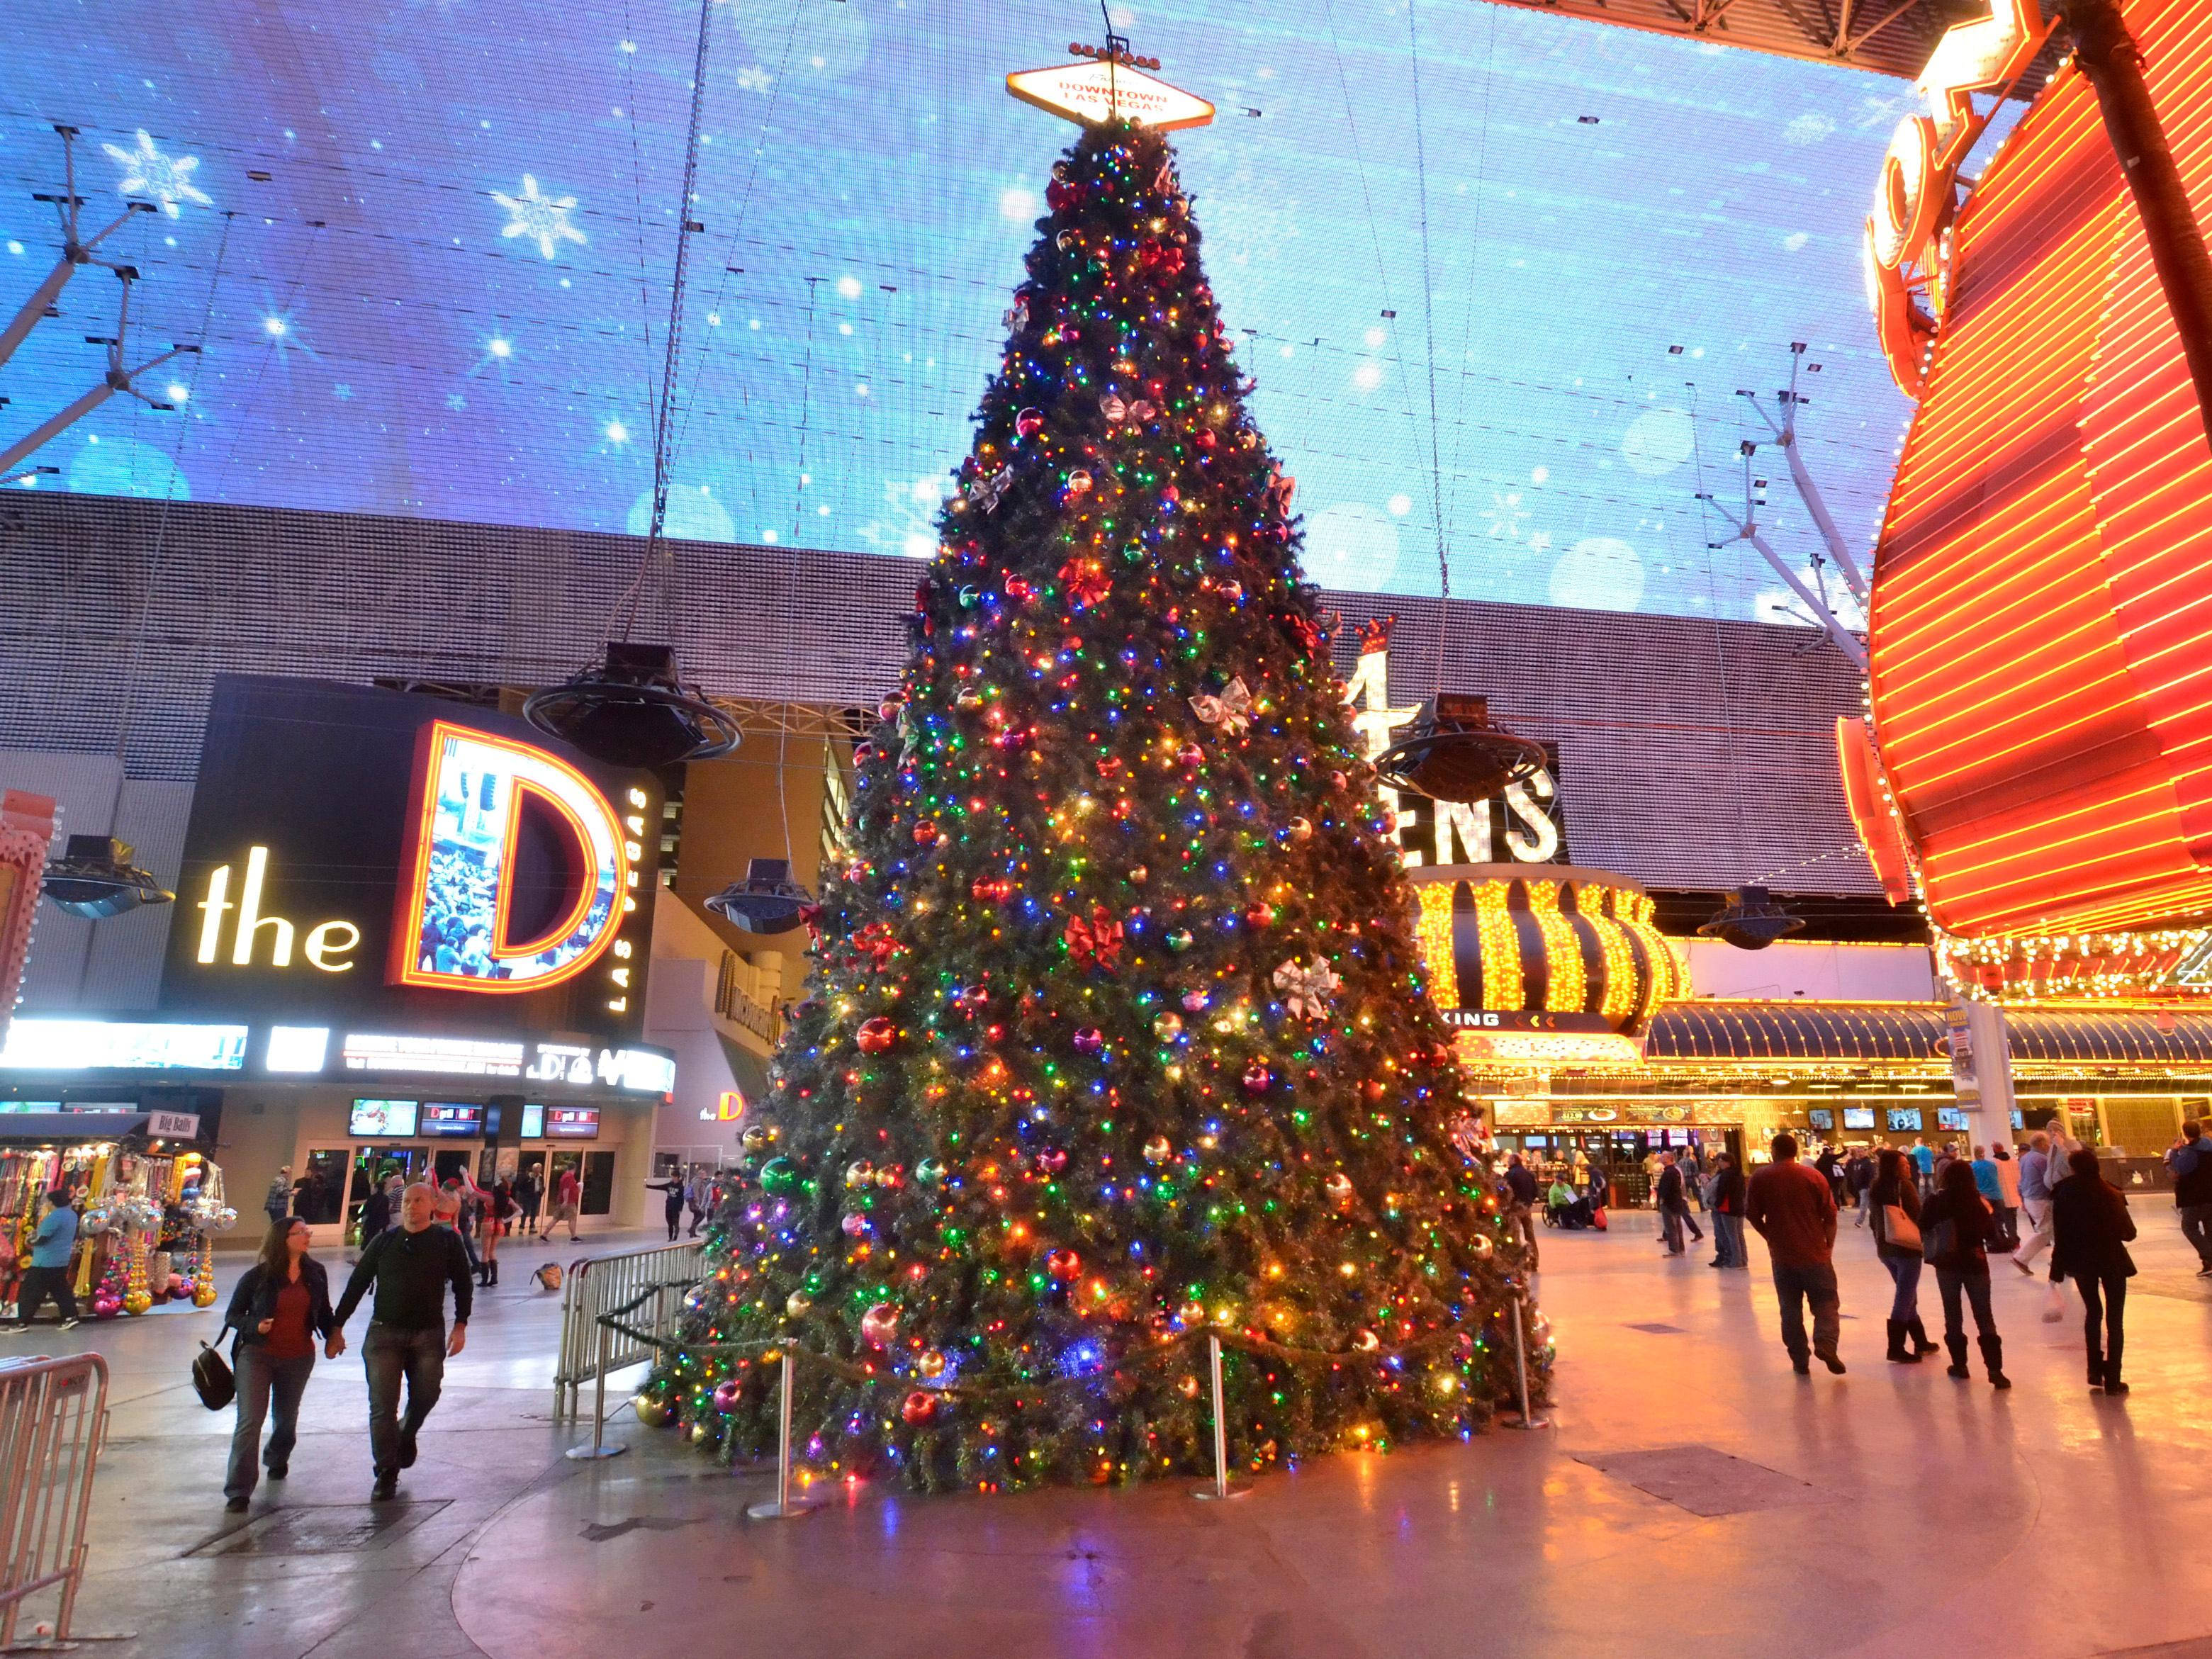 A Christmas tree is shown on Fremont Street in downtown Las Vegas on Tuesday, Dec. 12, 2017. CREDIT: Bill Hughes/Las Vegas News Bureau